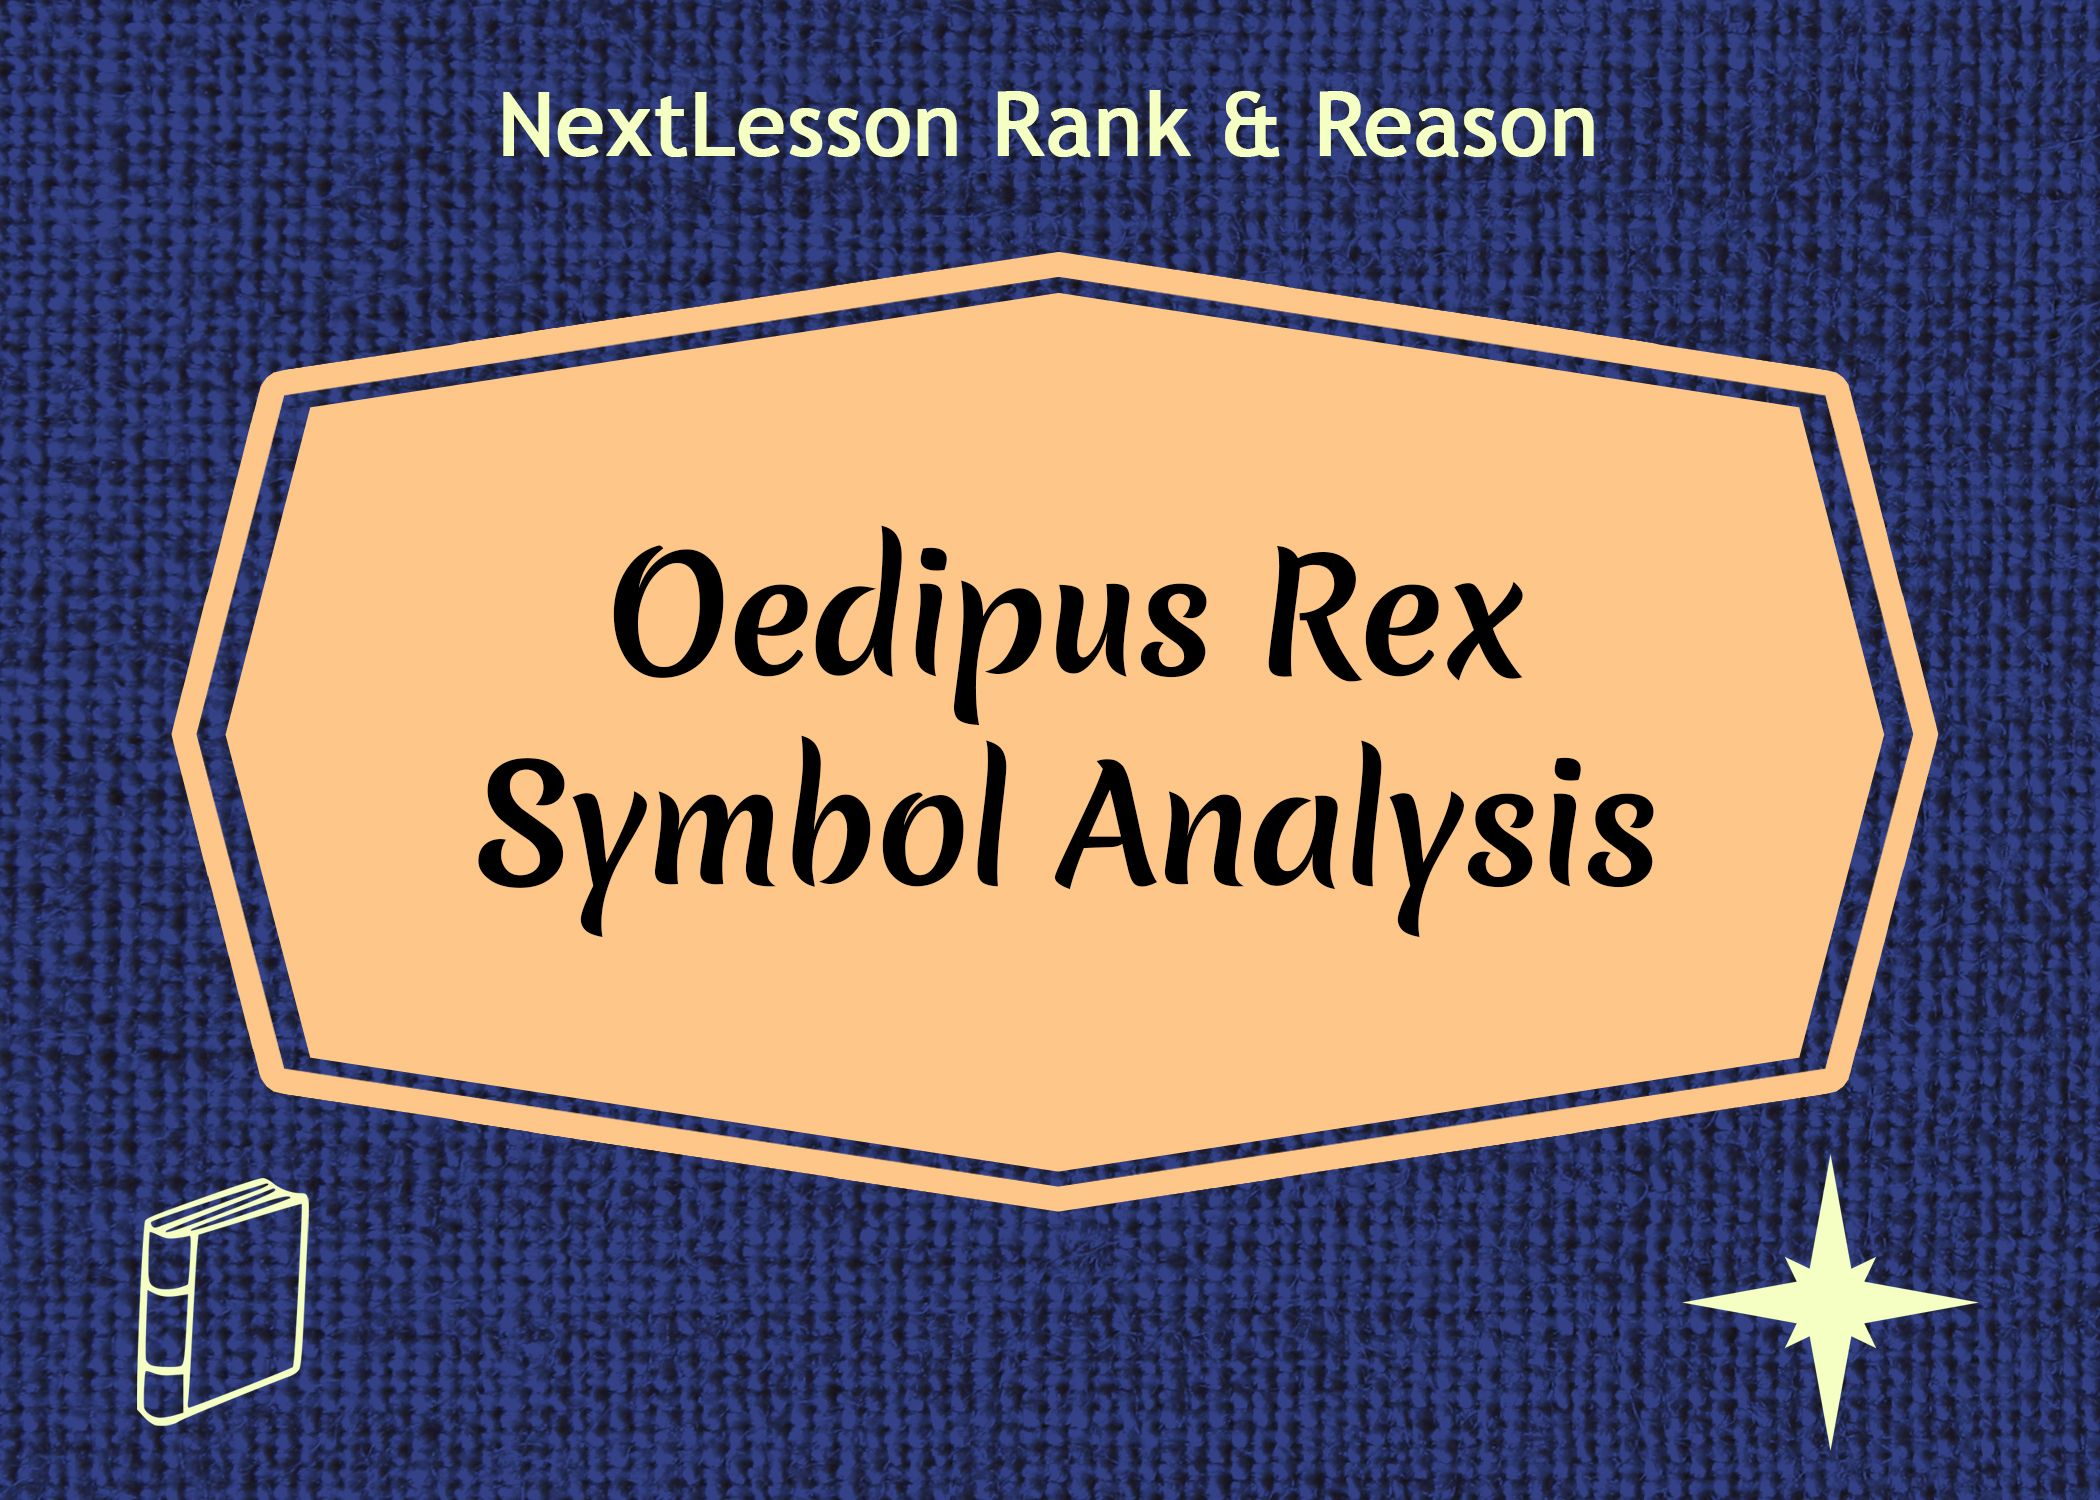 Symbol in literature 1000 images about real world ela activities analyze sophocles use of symbolism in oedipus rex symbol analysis biocorpaavc Choice Image